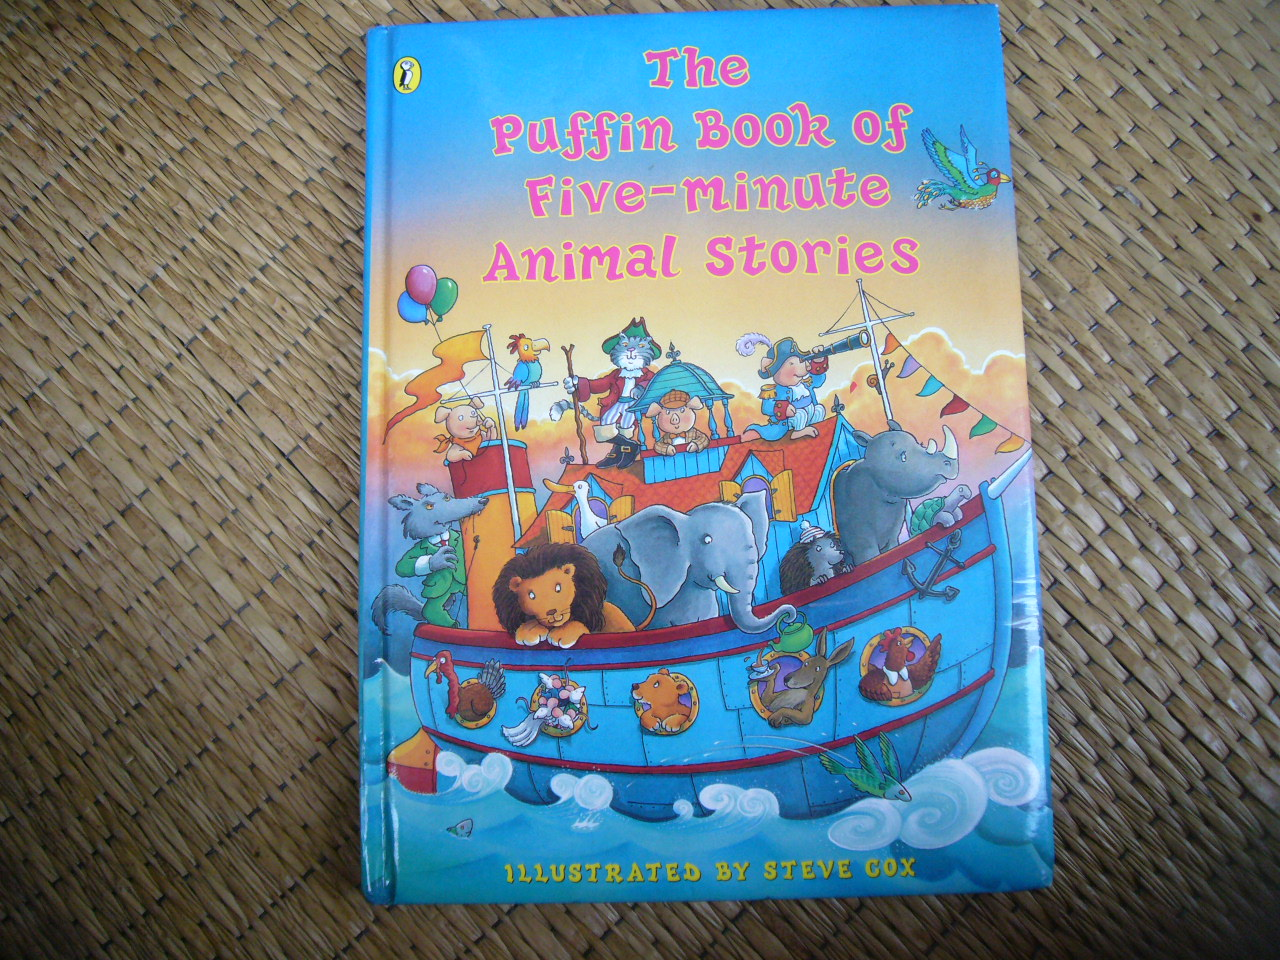 The Puffin Book of Five-Minute Animal Stories